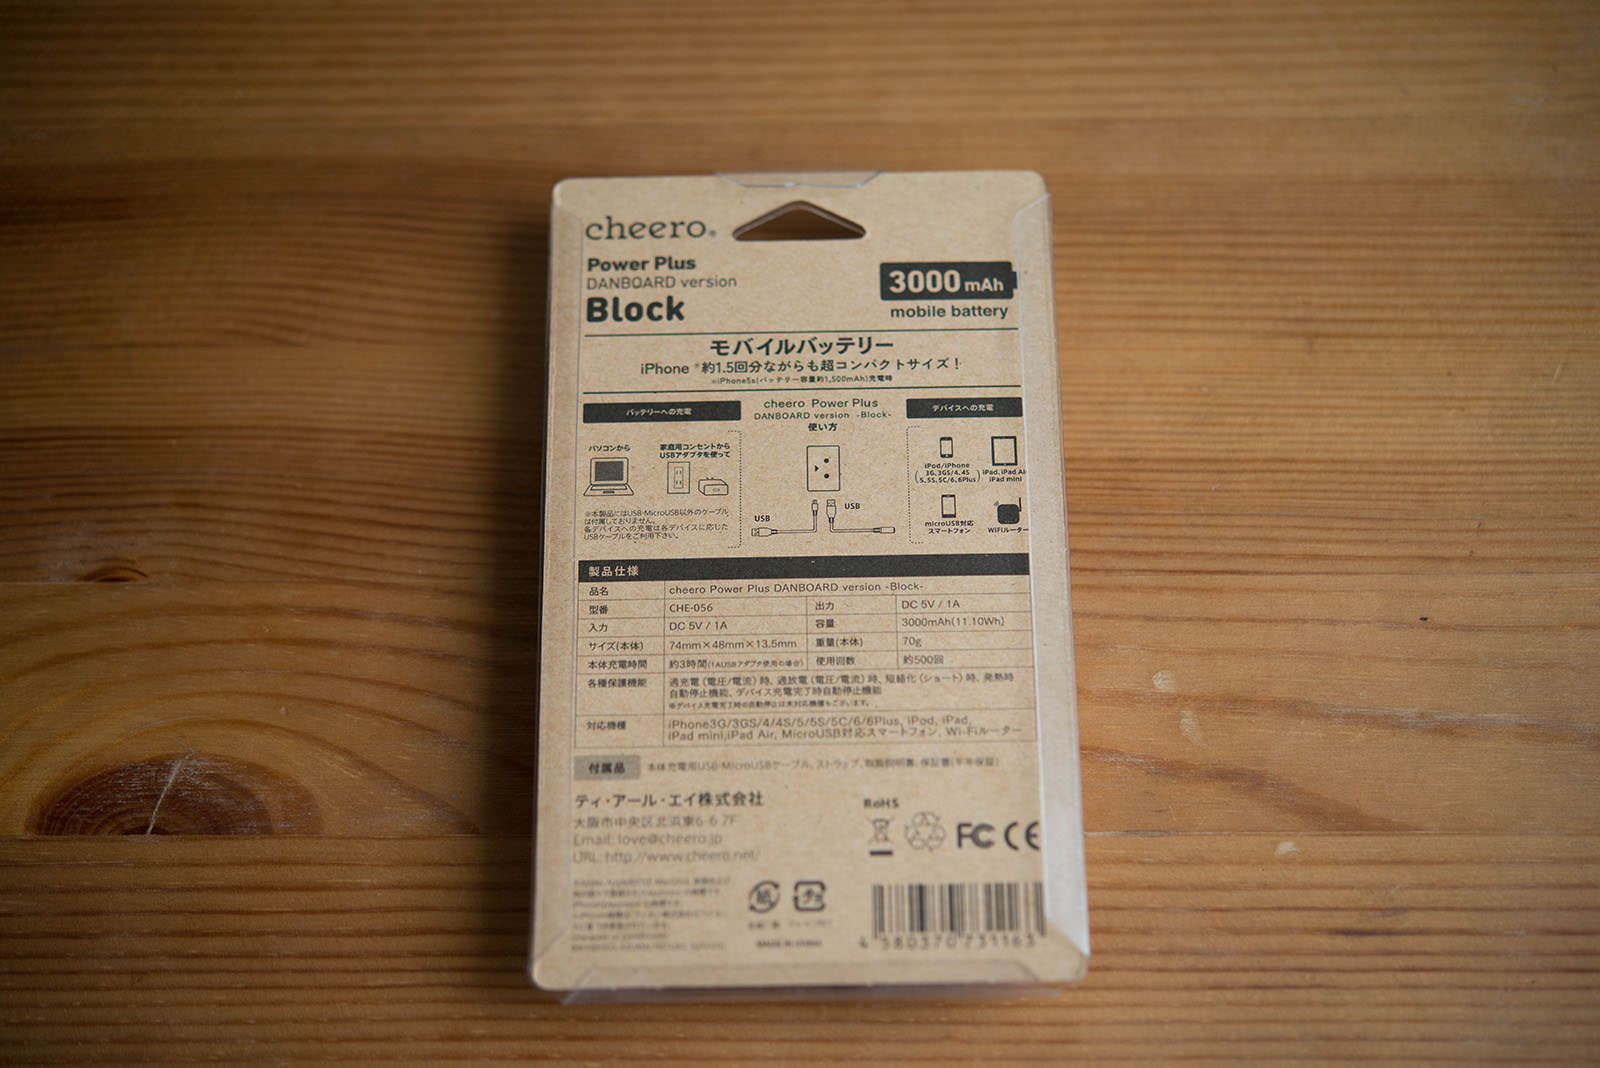 cheero Power Plus DANBOARD version block review_02